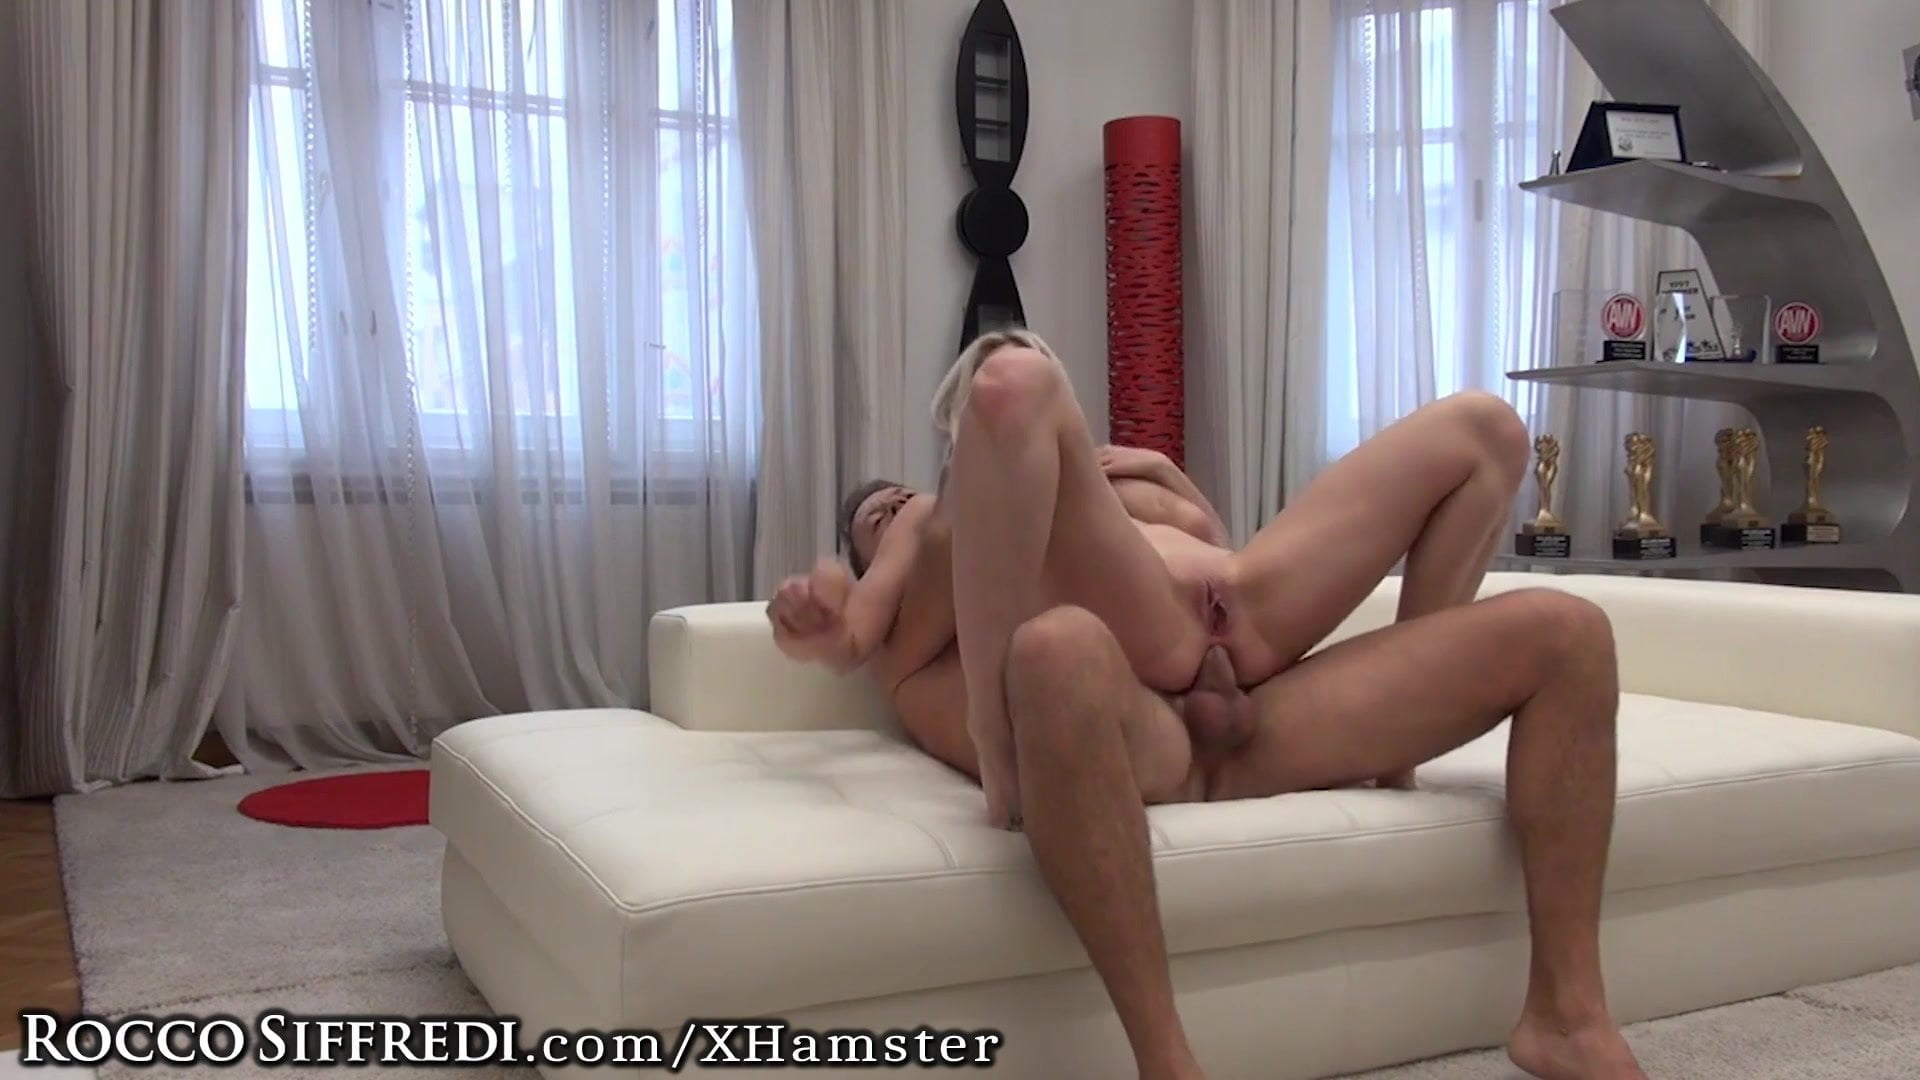 .Rocco Siffredi's Cock in Amateur Teen Ass & Dildo DP's.